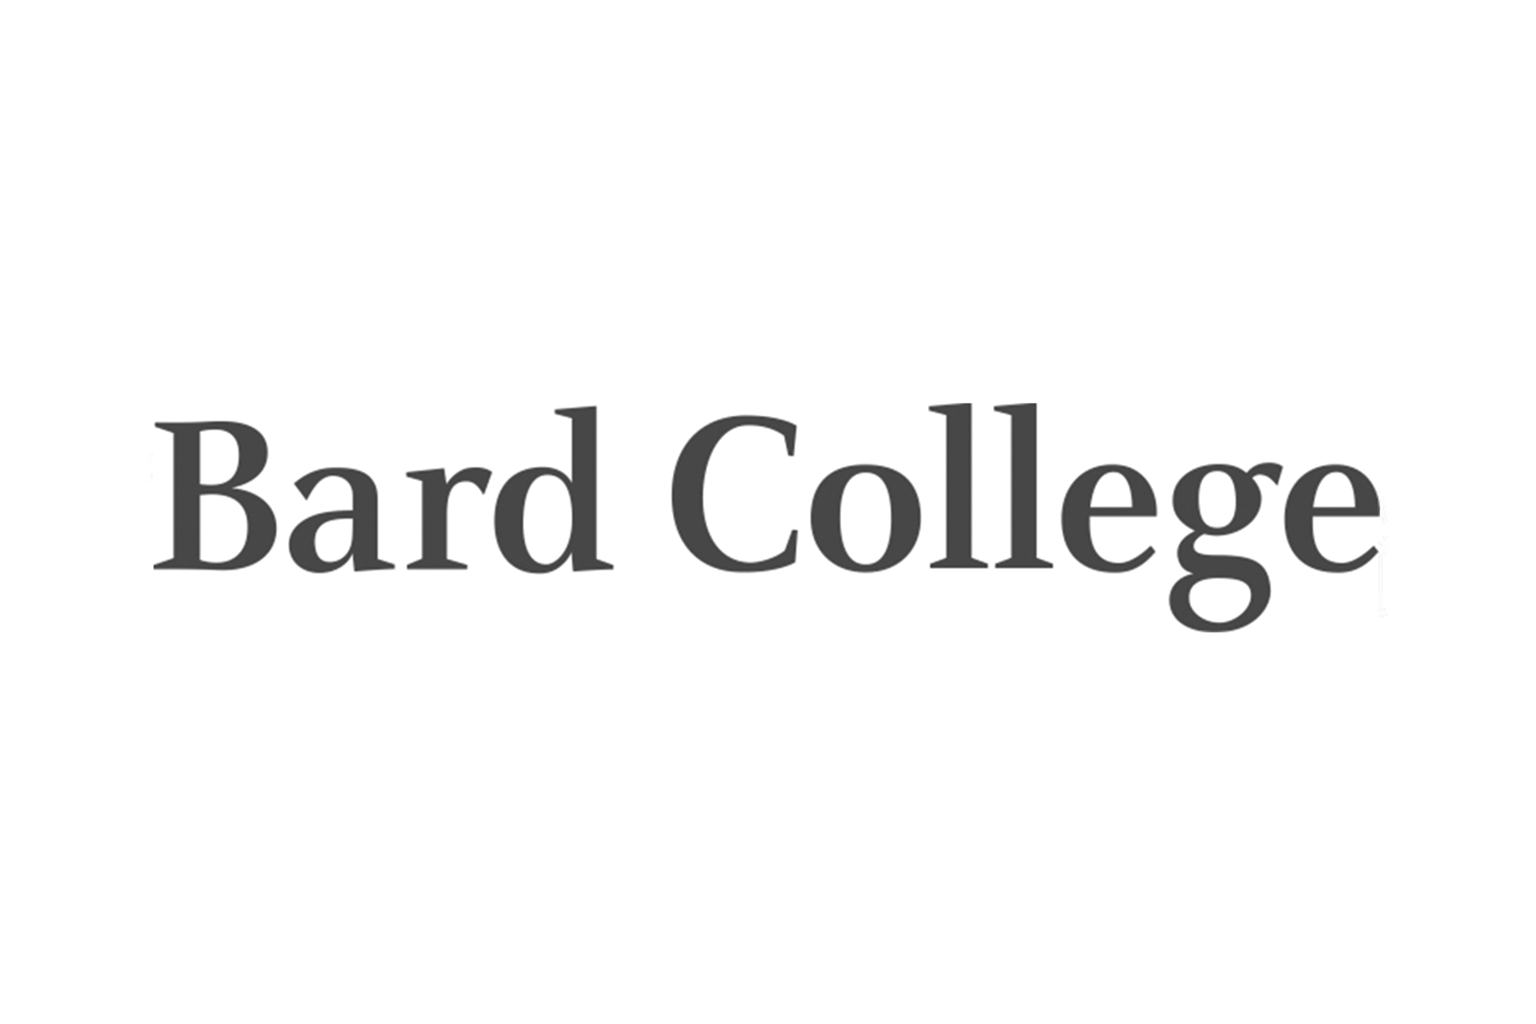 Bard-college-logo.png